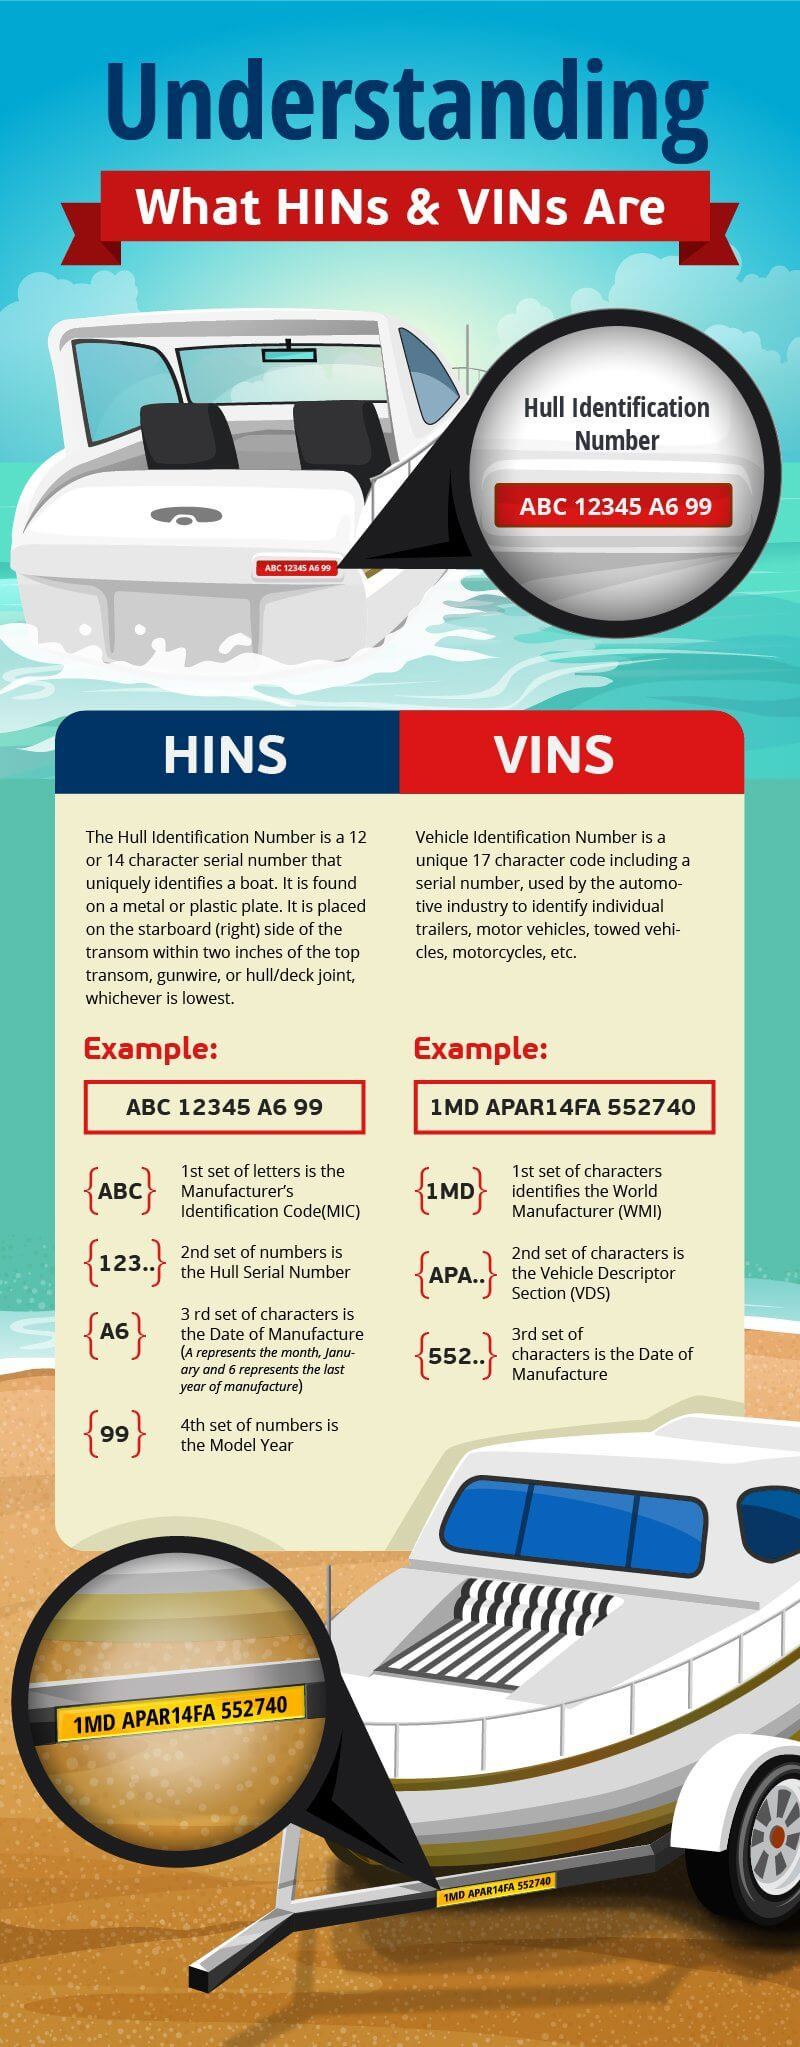 What Are HINs and VINs?